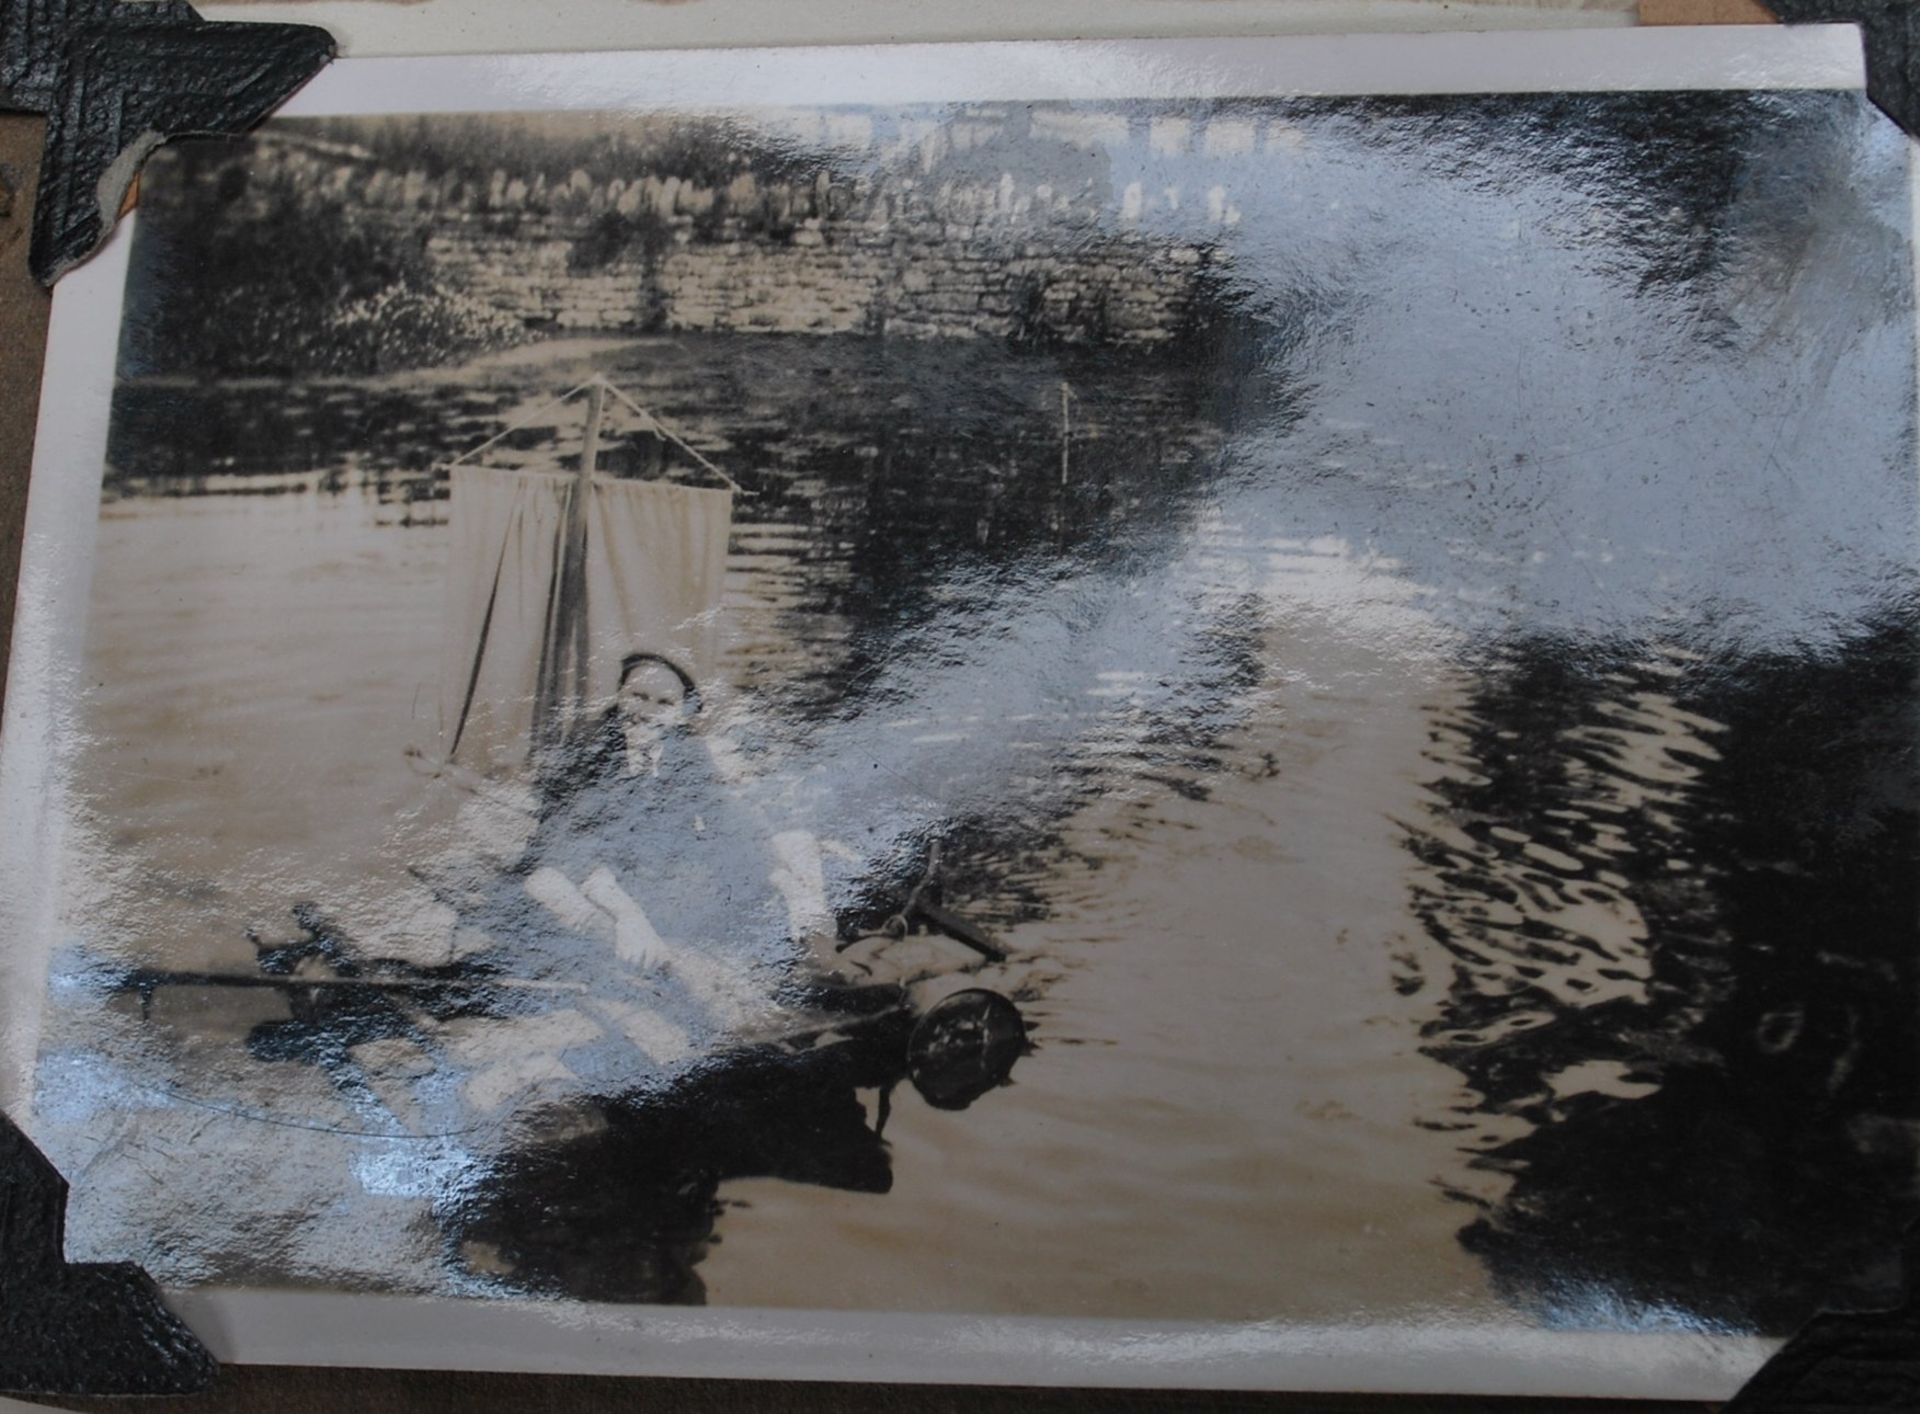 EARLY 20TH CENTURY BLACK AND WHITE PHOTO ALBUM - Image 9 of 14